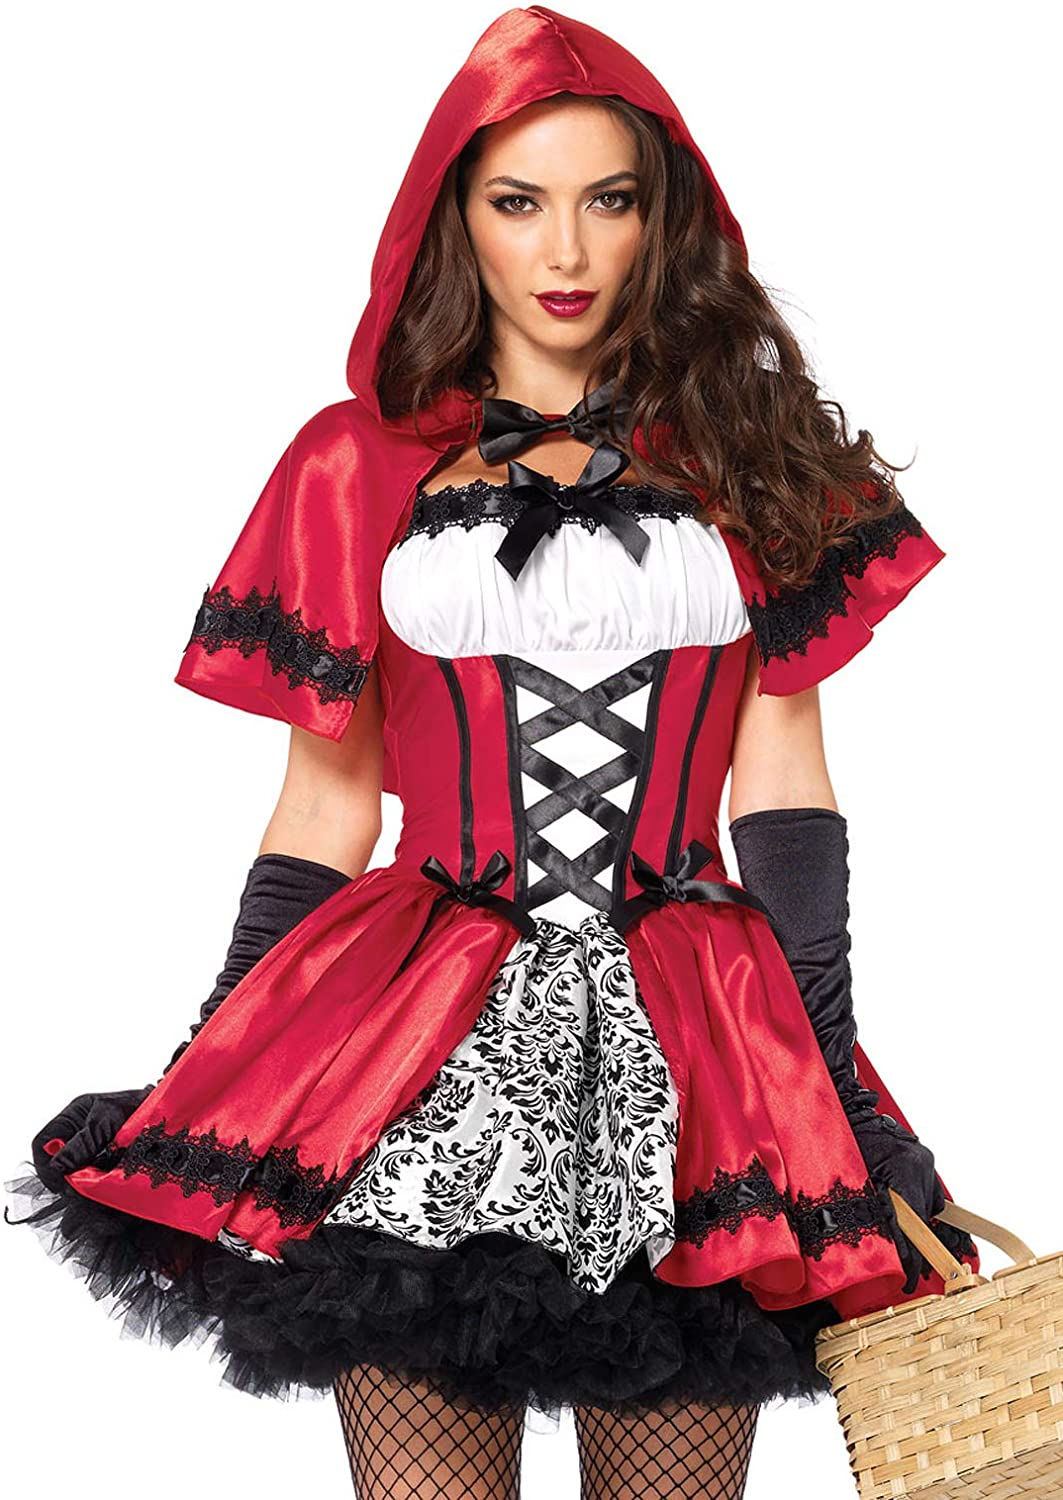 Leg Avenue Women's Gothic Red Riding Hood Costume